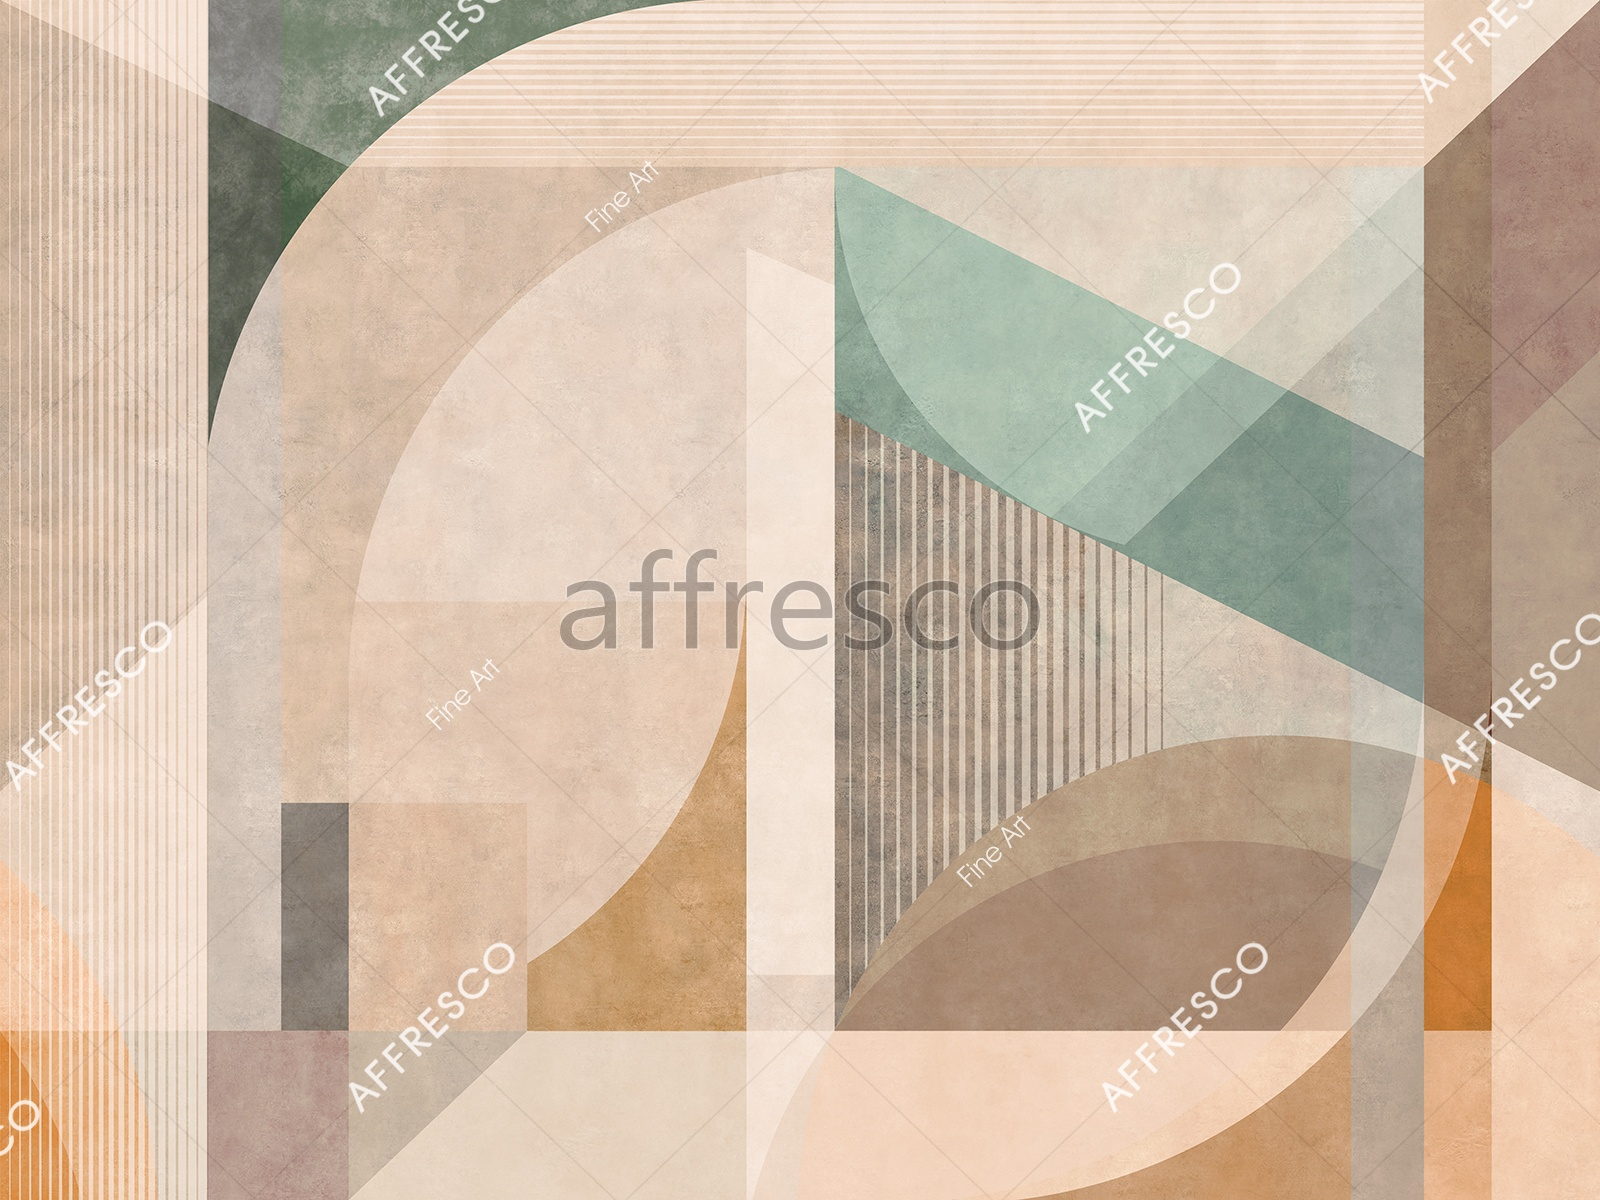 RE882-COL3 | Fine Art | Affresco Factory